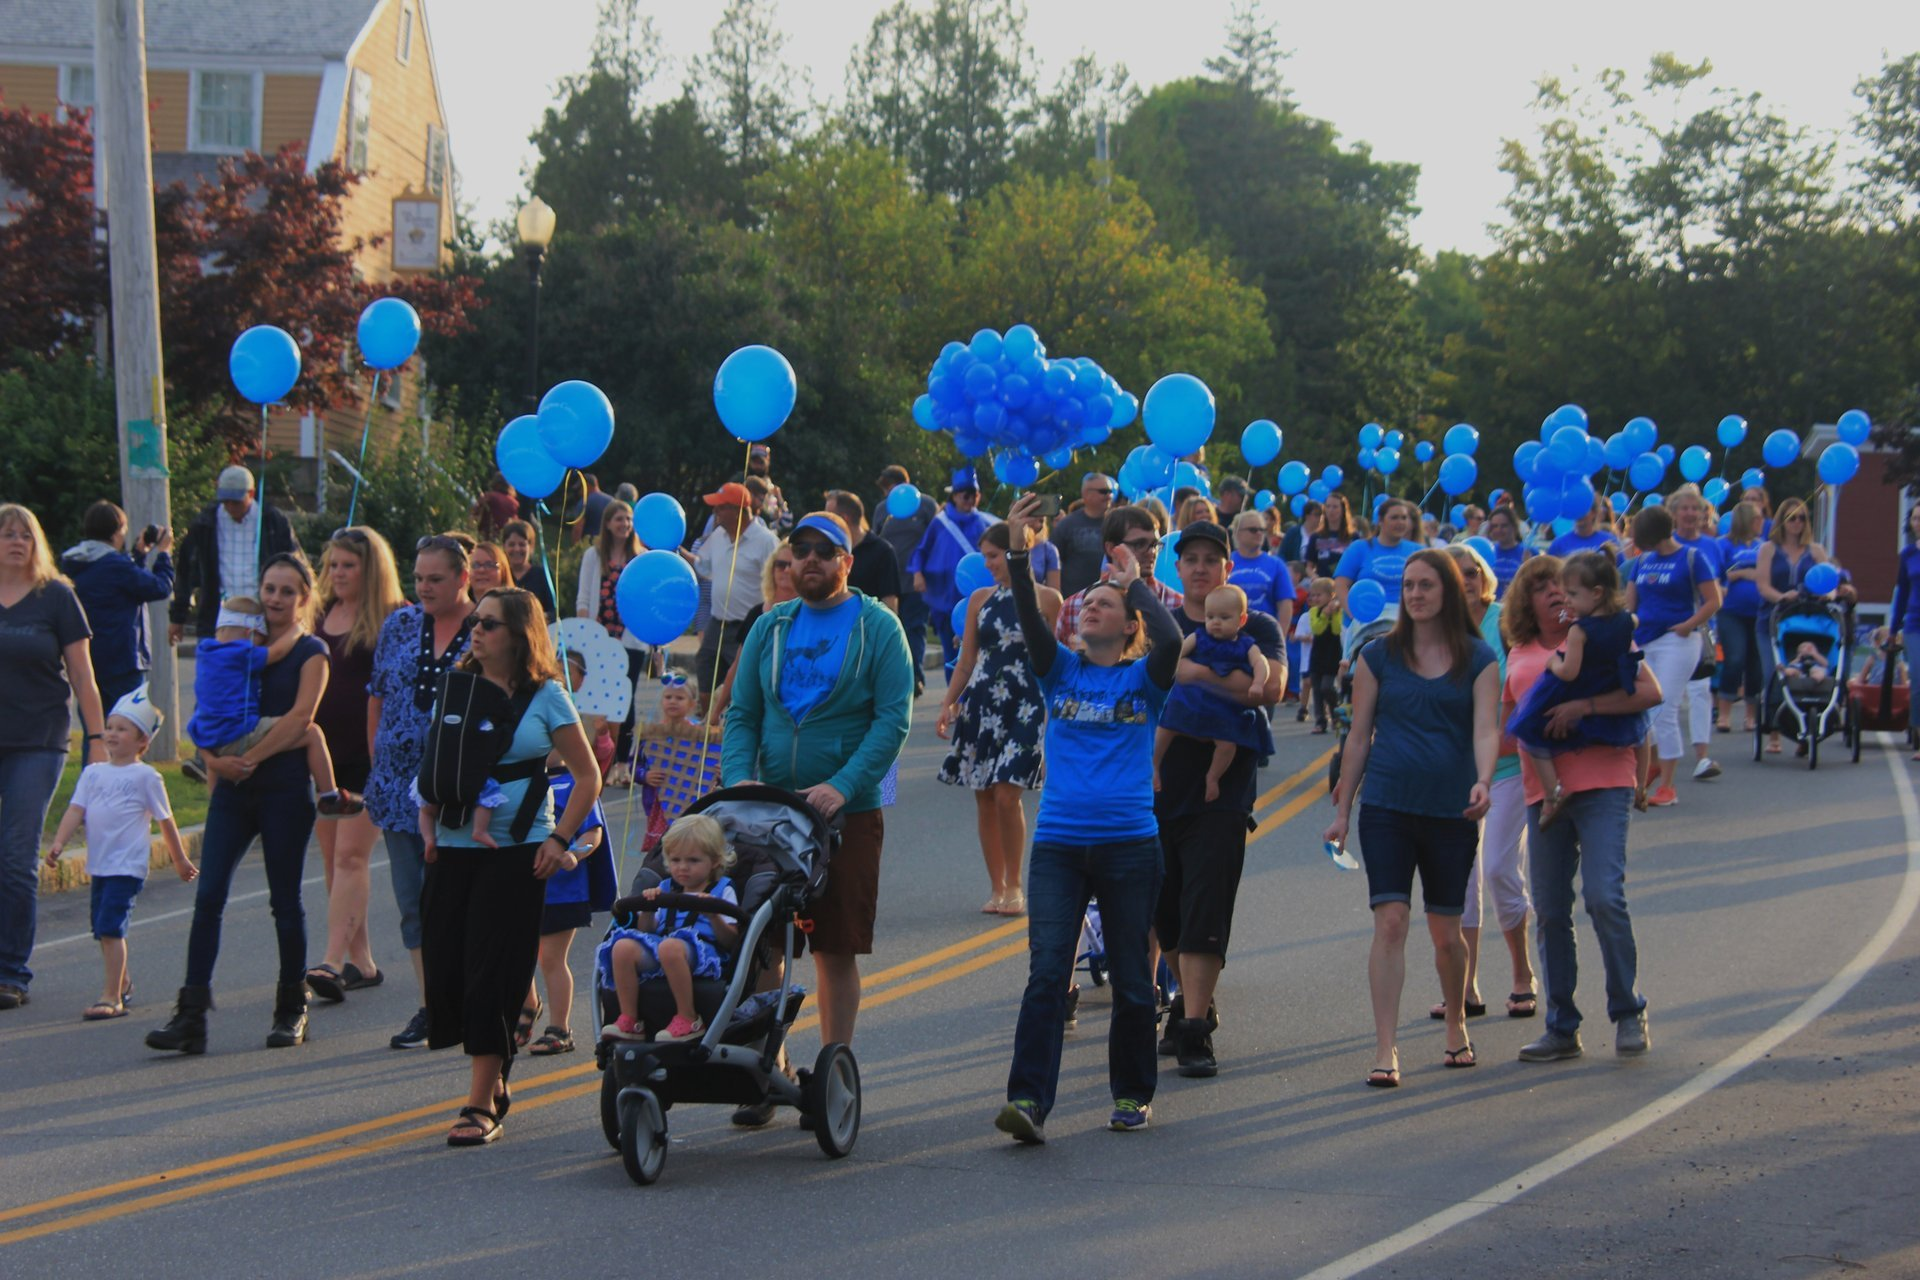 BBF children's parade 2020